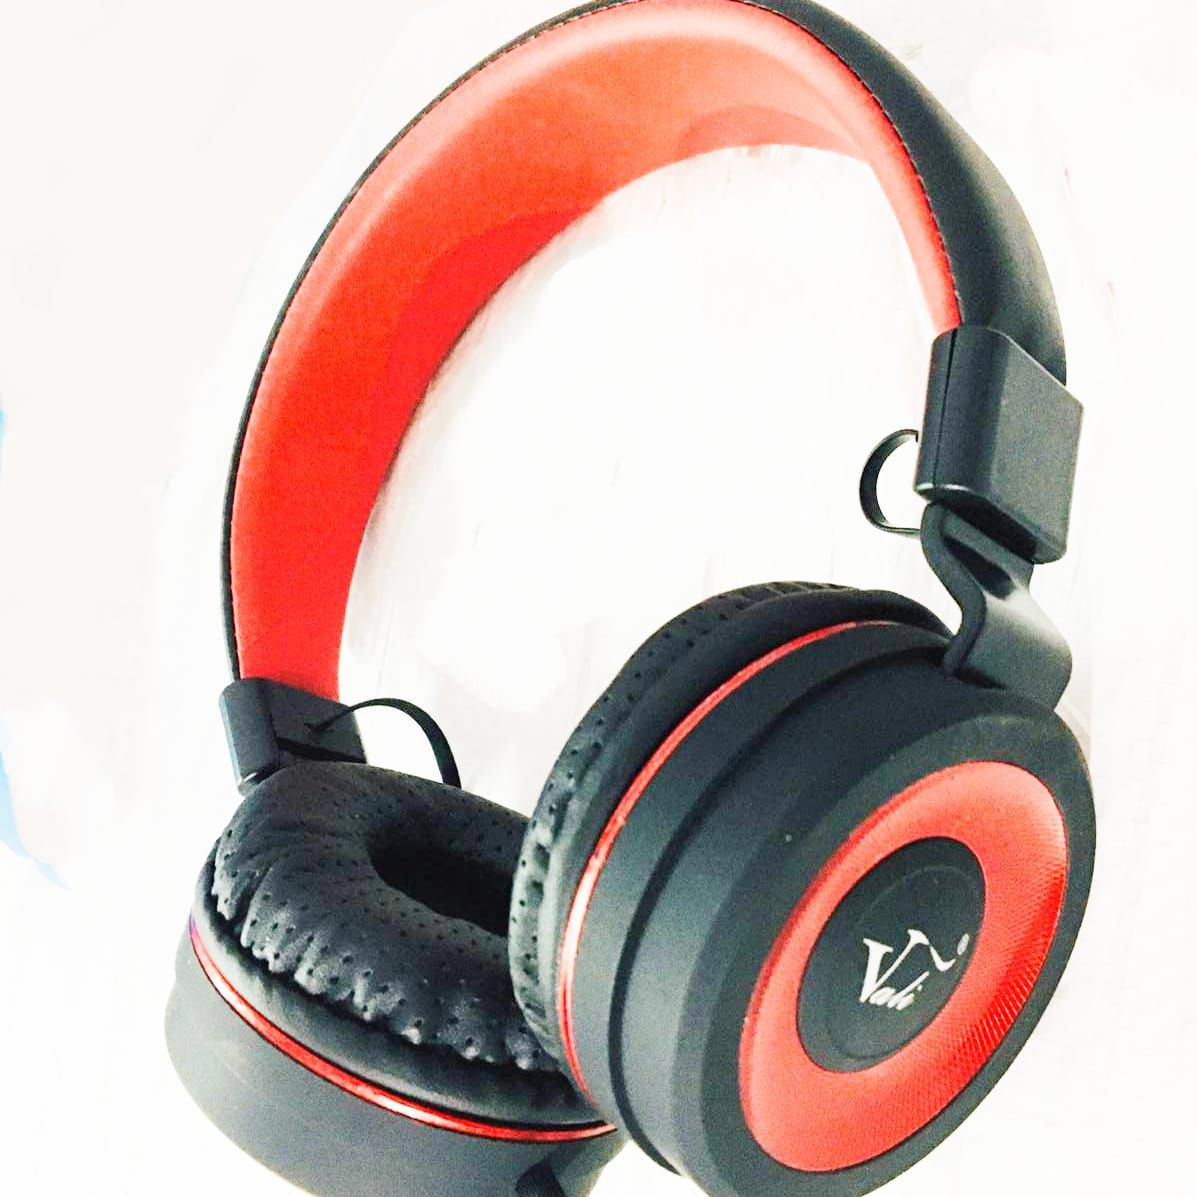 Vali v-889 stereo sound Over Ear Wired With Mic Headphones/Earphones